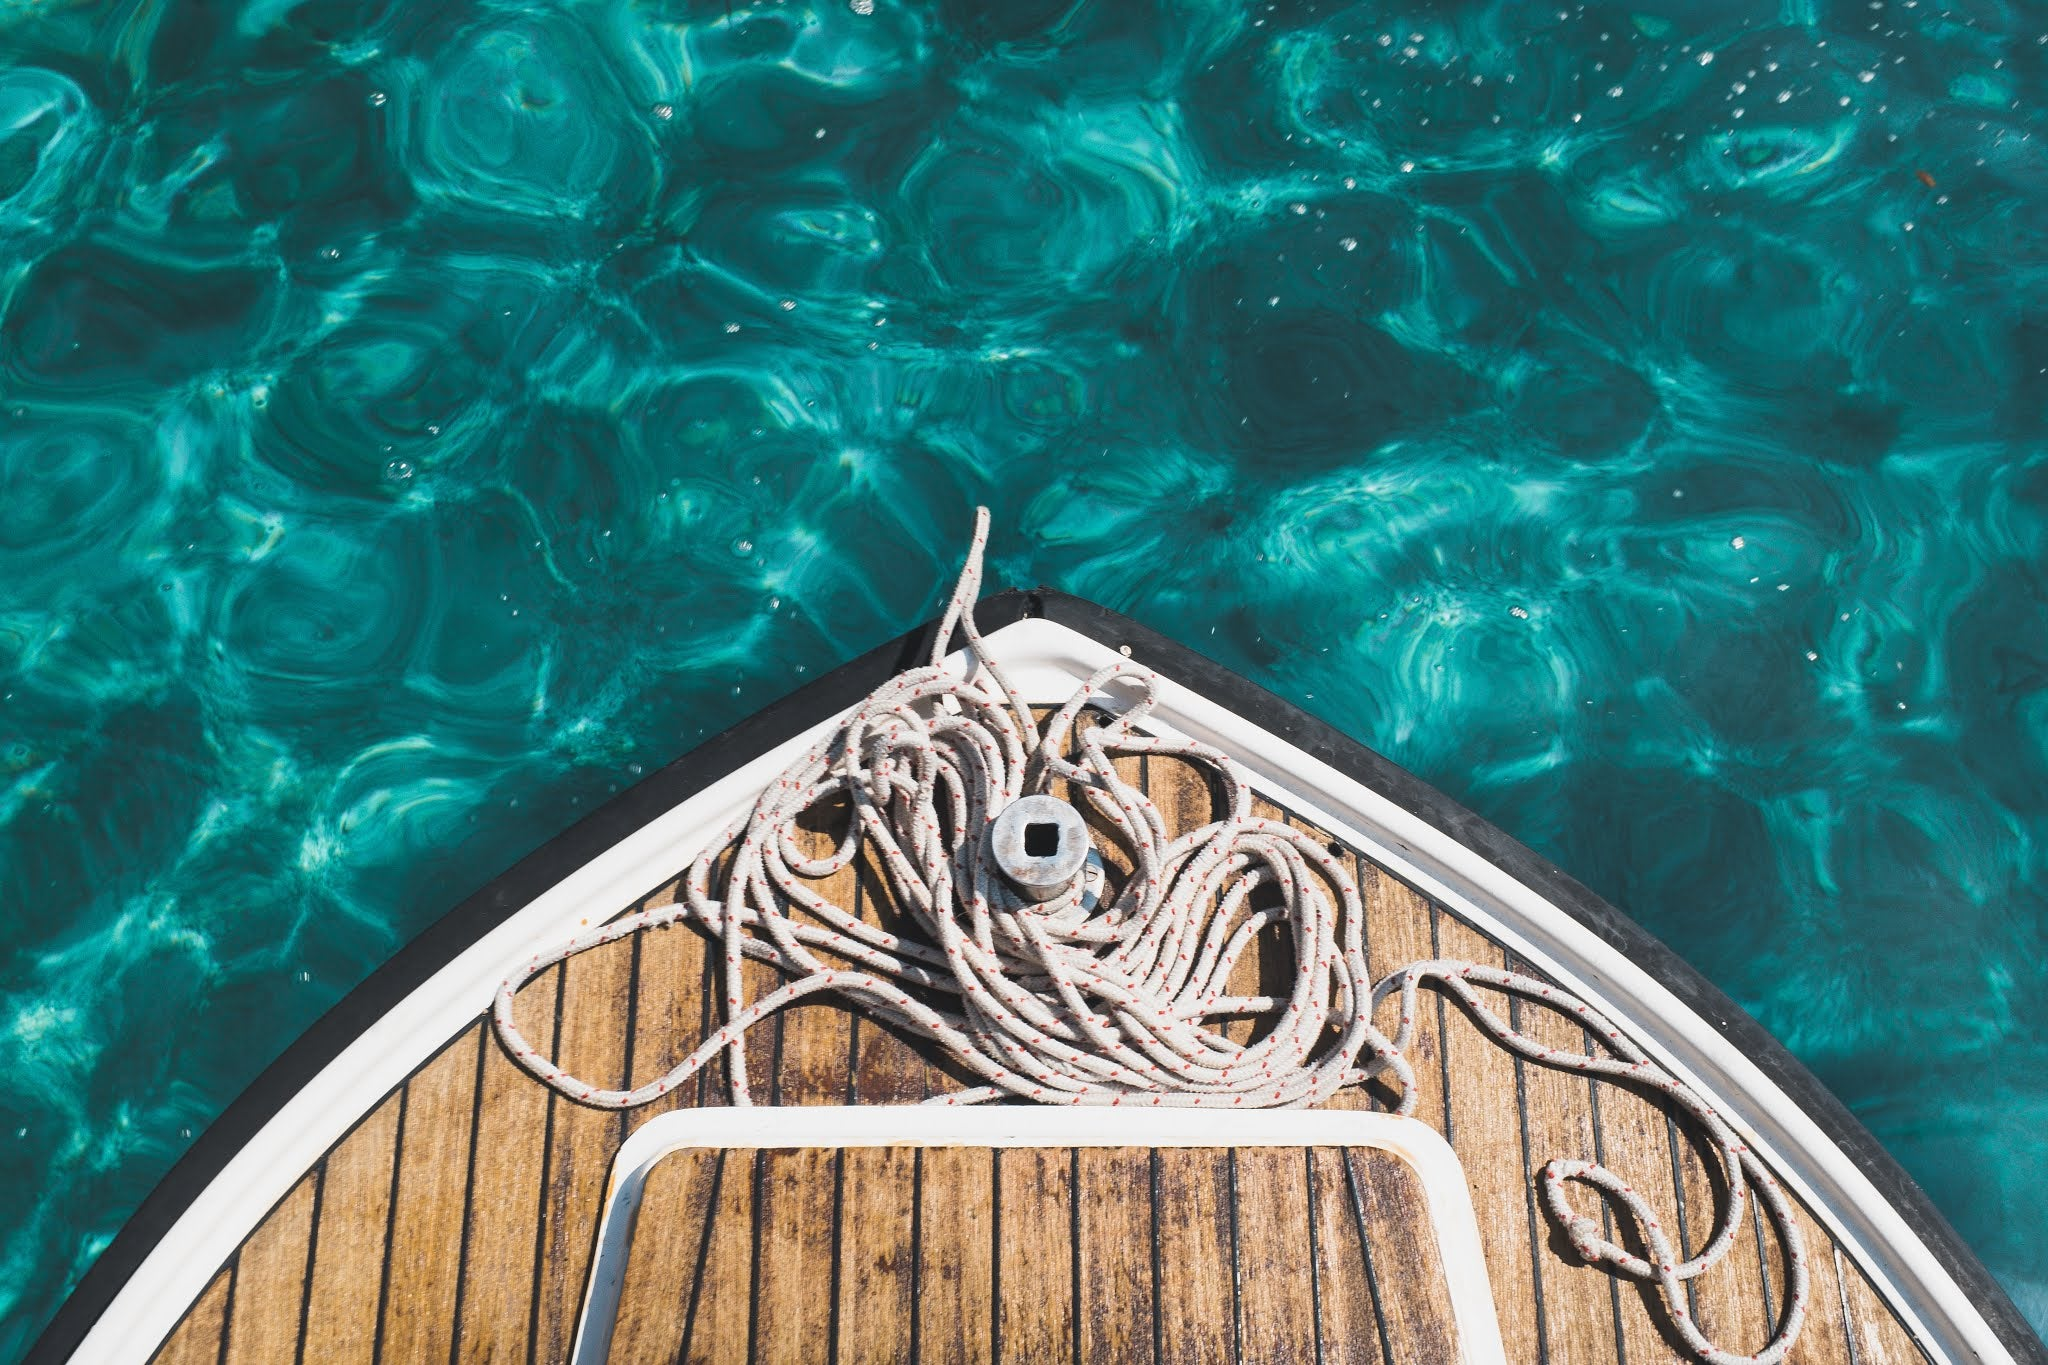 Should you apply your own boat caulk?